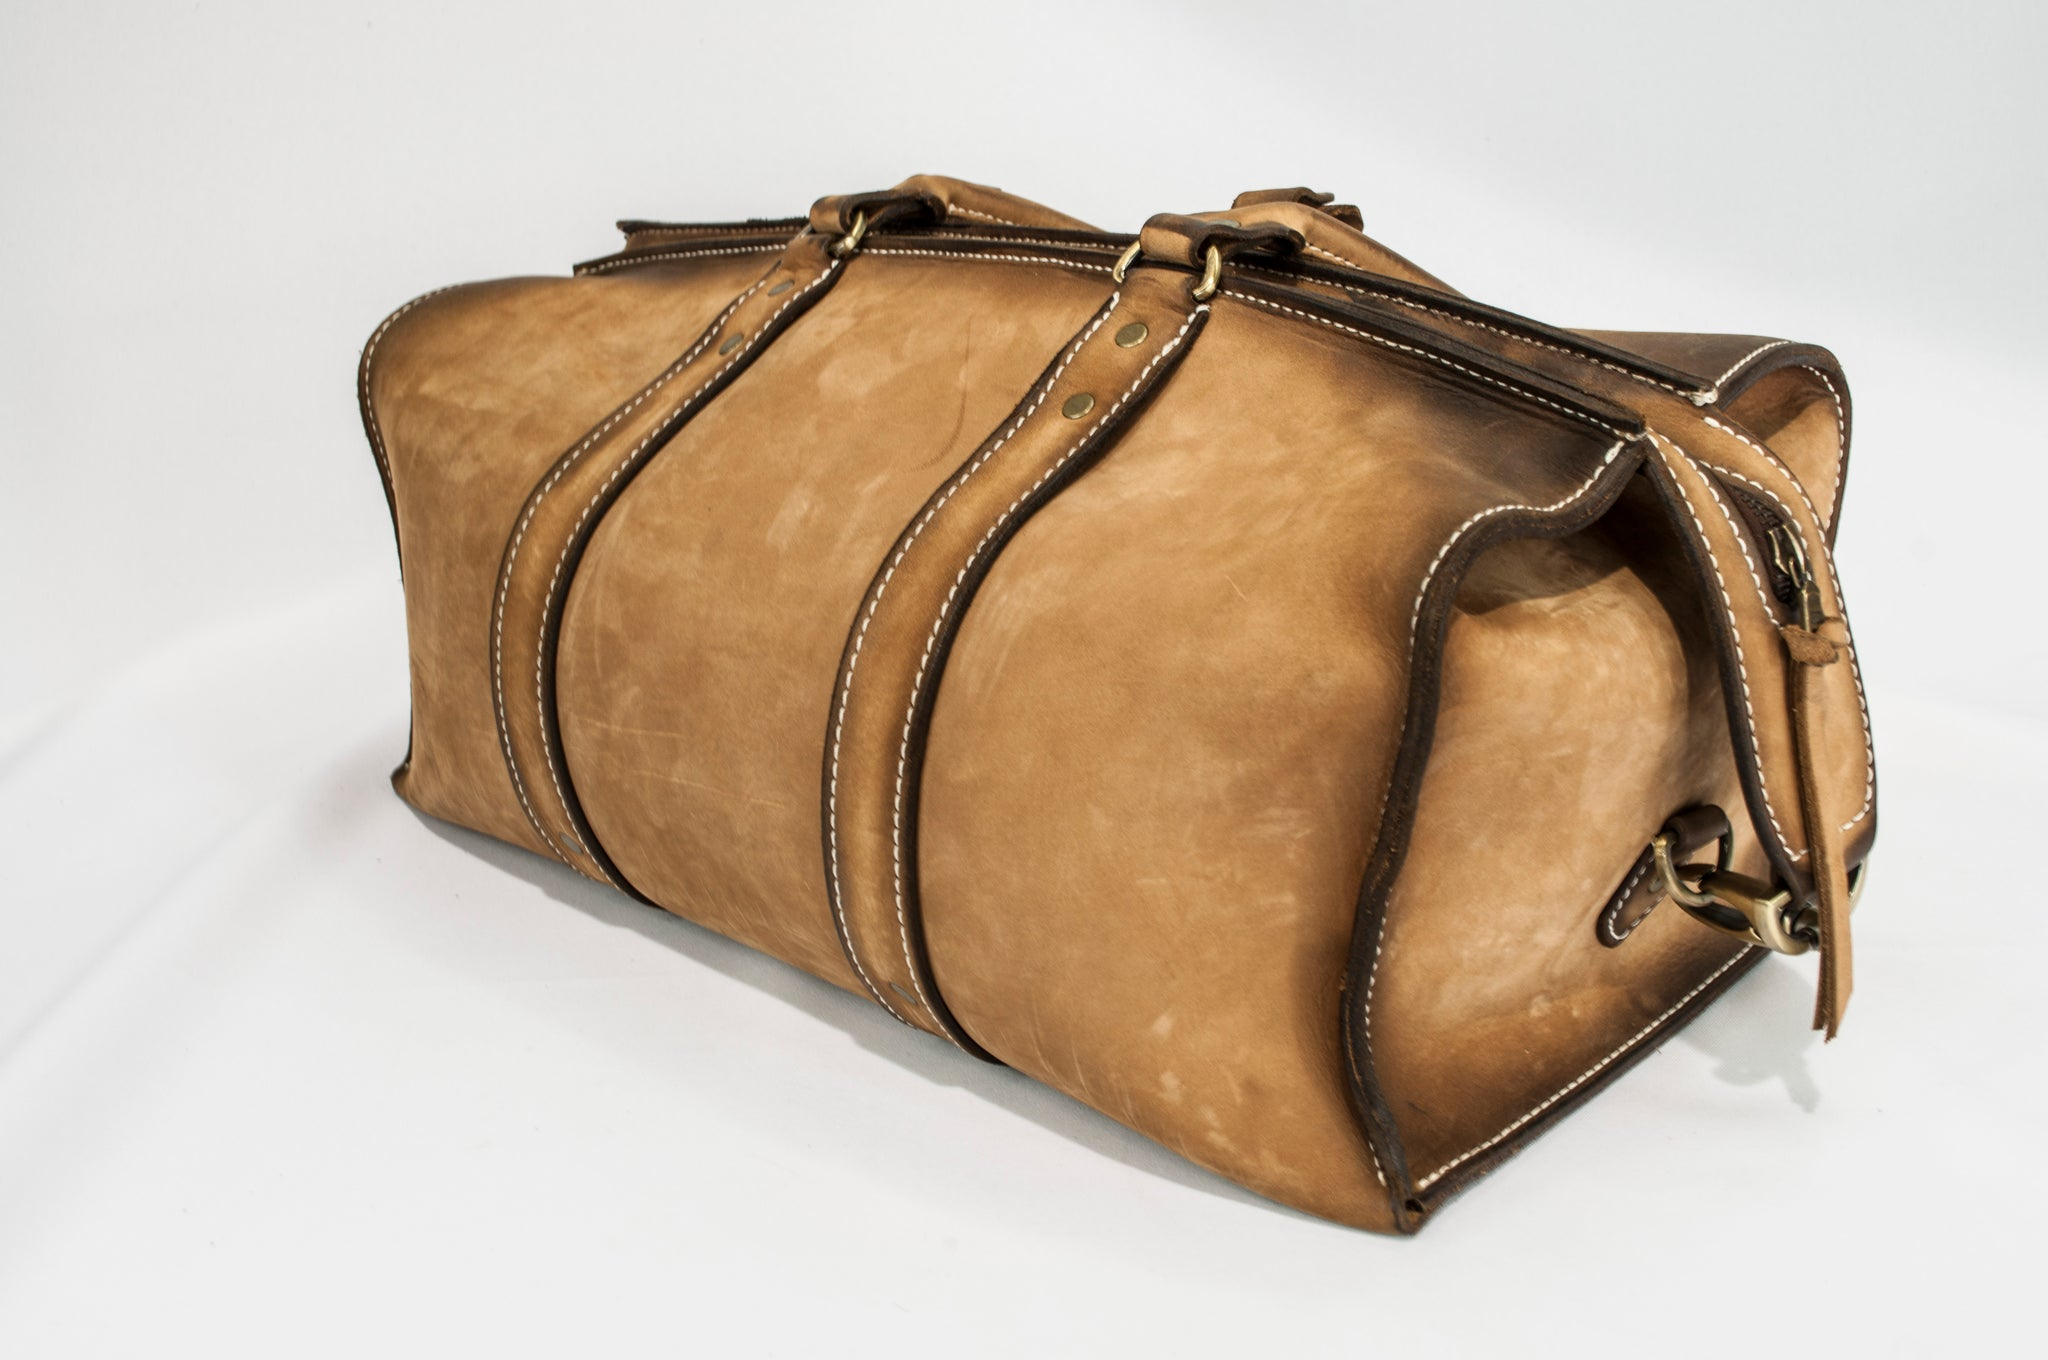 704d1e4ae3f8 1933 Weekender Duffel Bag (Tobacco Snakebite) - The Speakeasy Leather Co